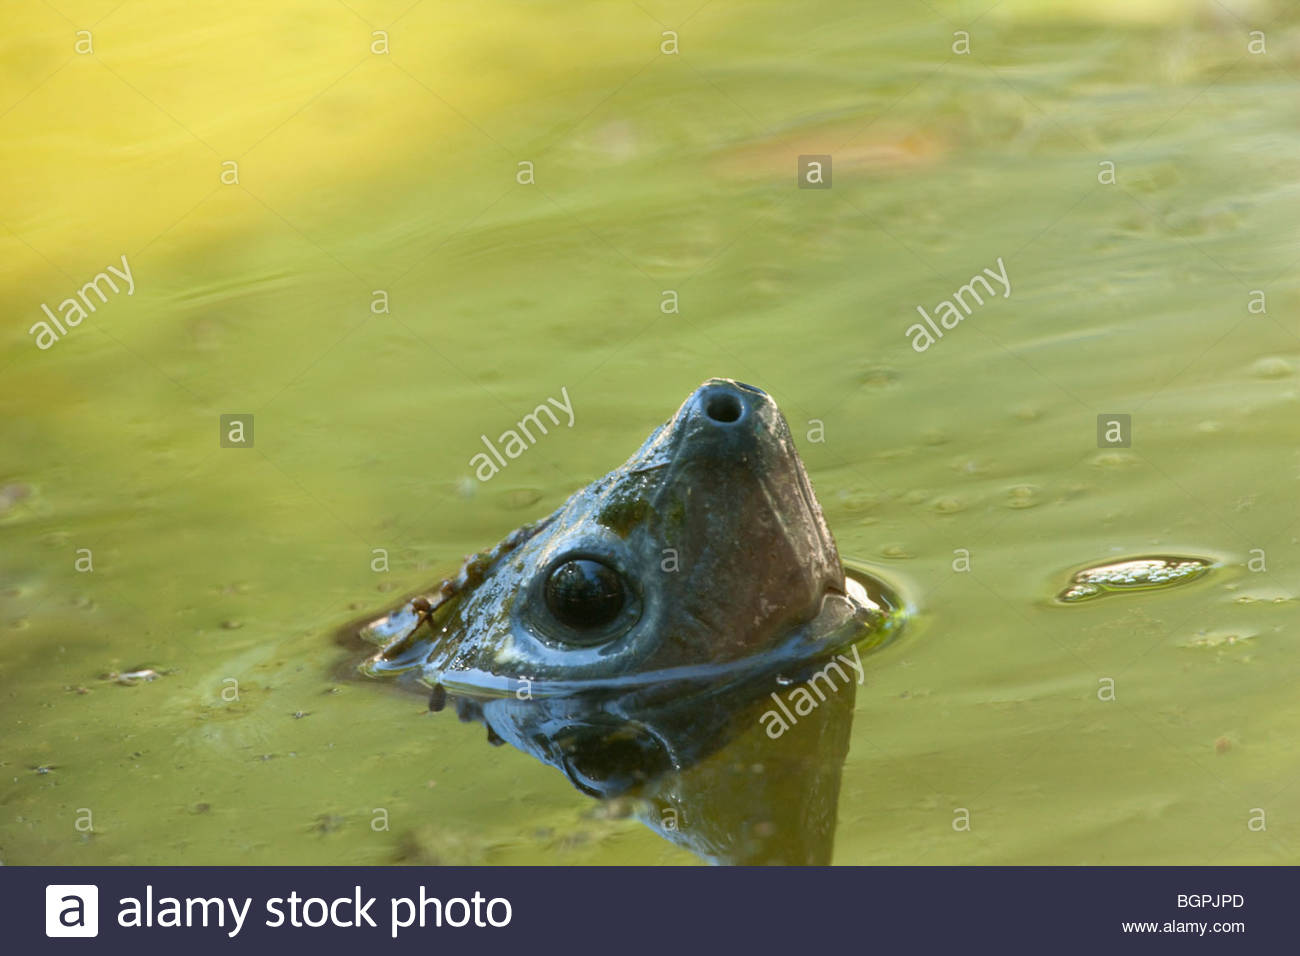 Snapping Turtle, Florida - Stock Image